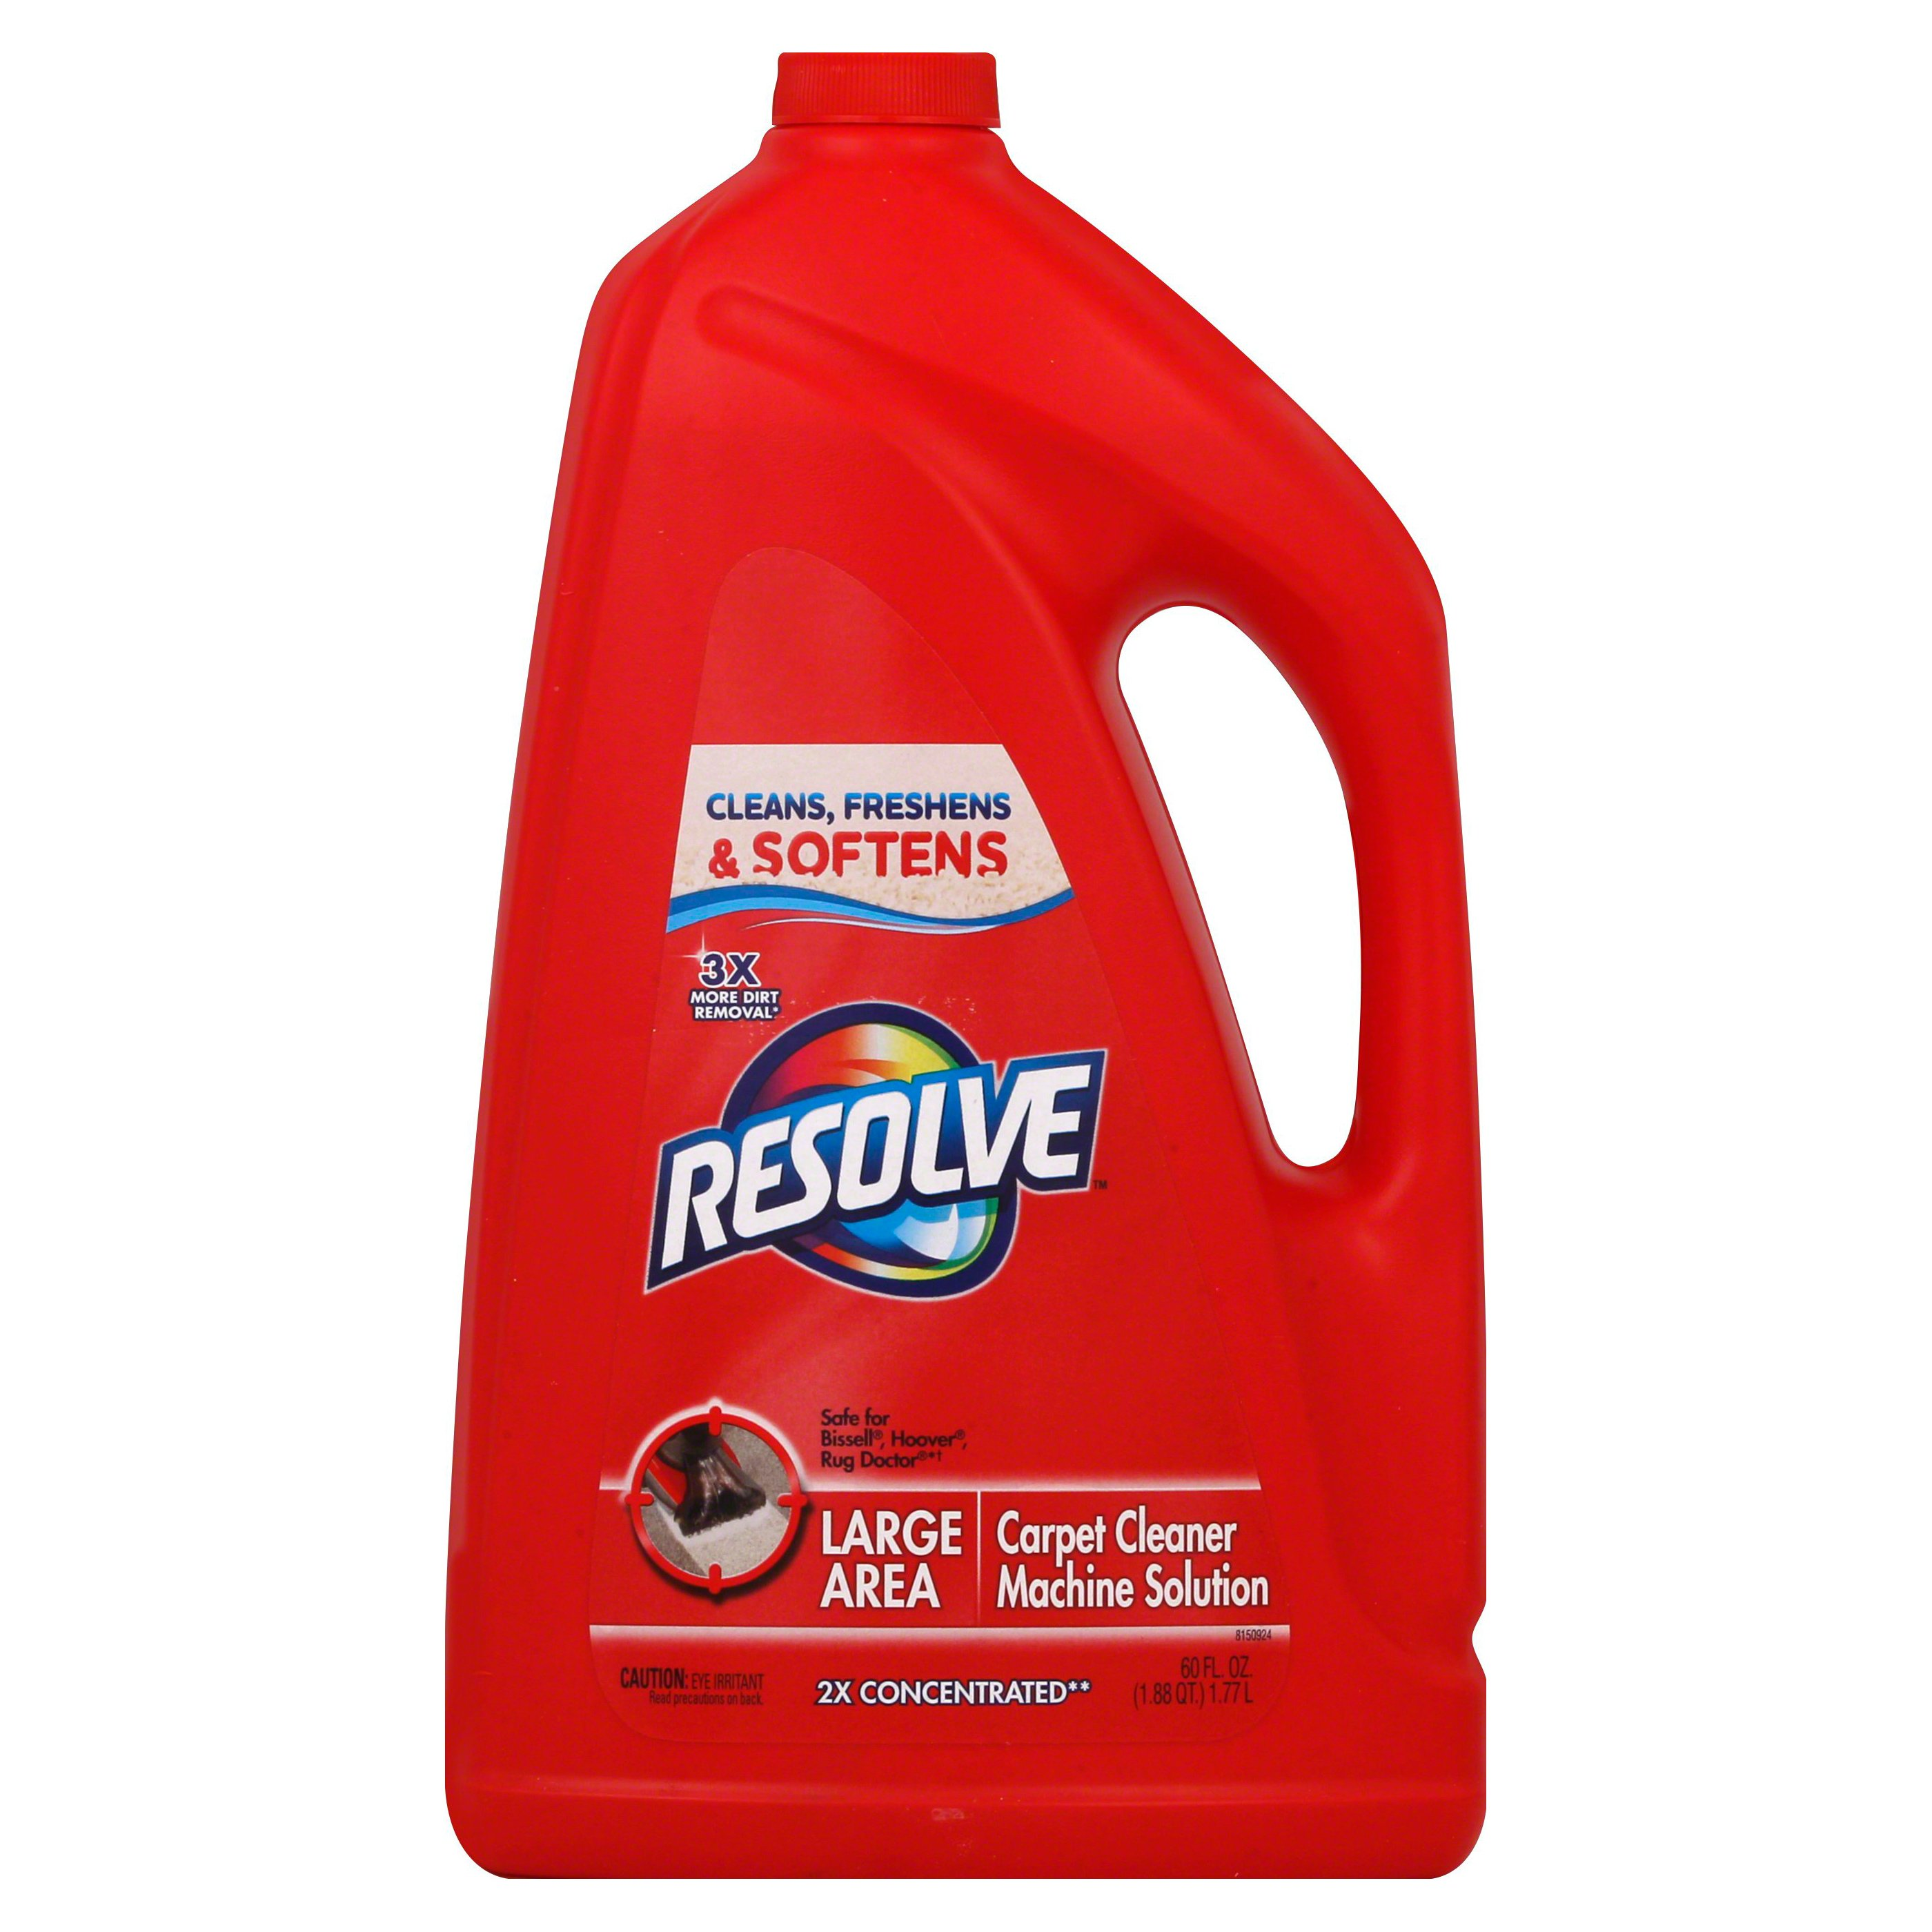 Resolve® Large Area Machine Solution Carpet Cleaner